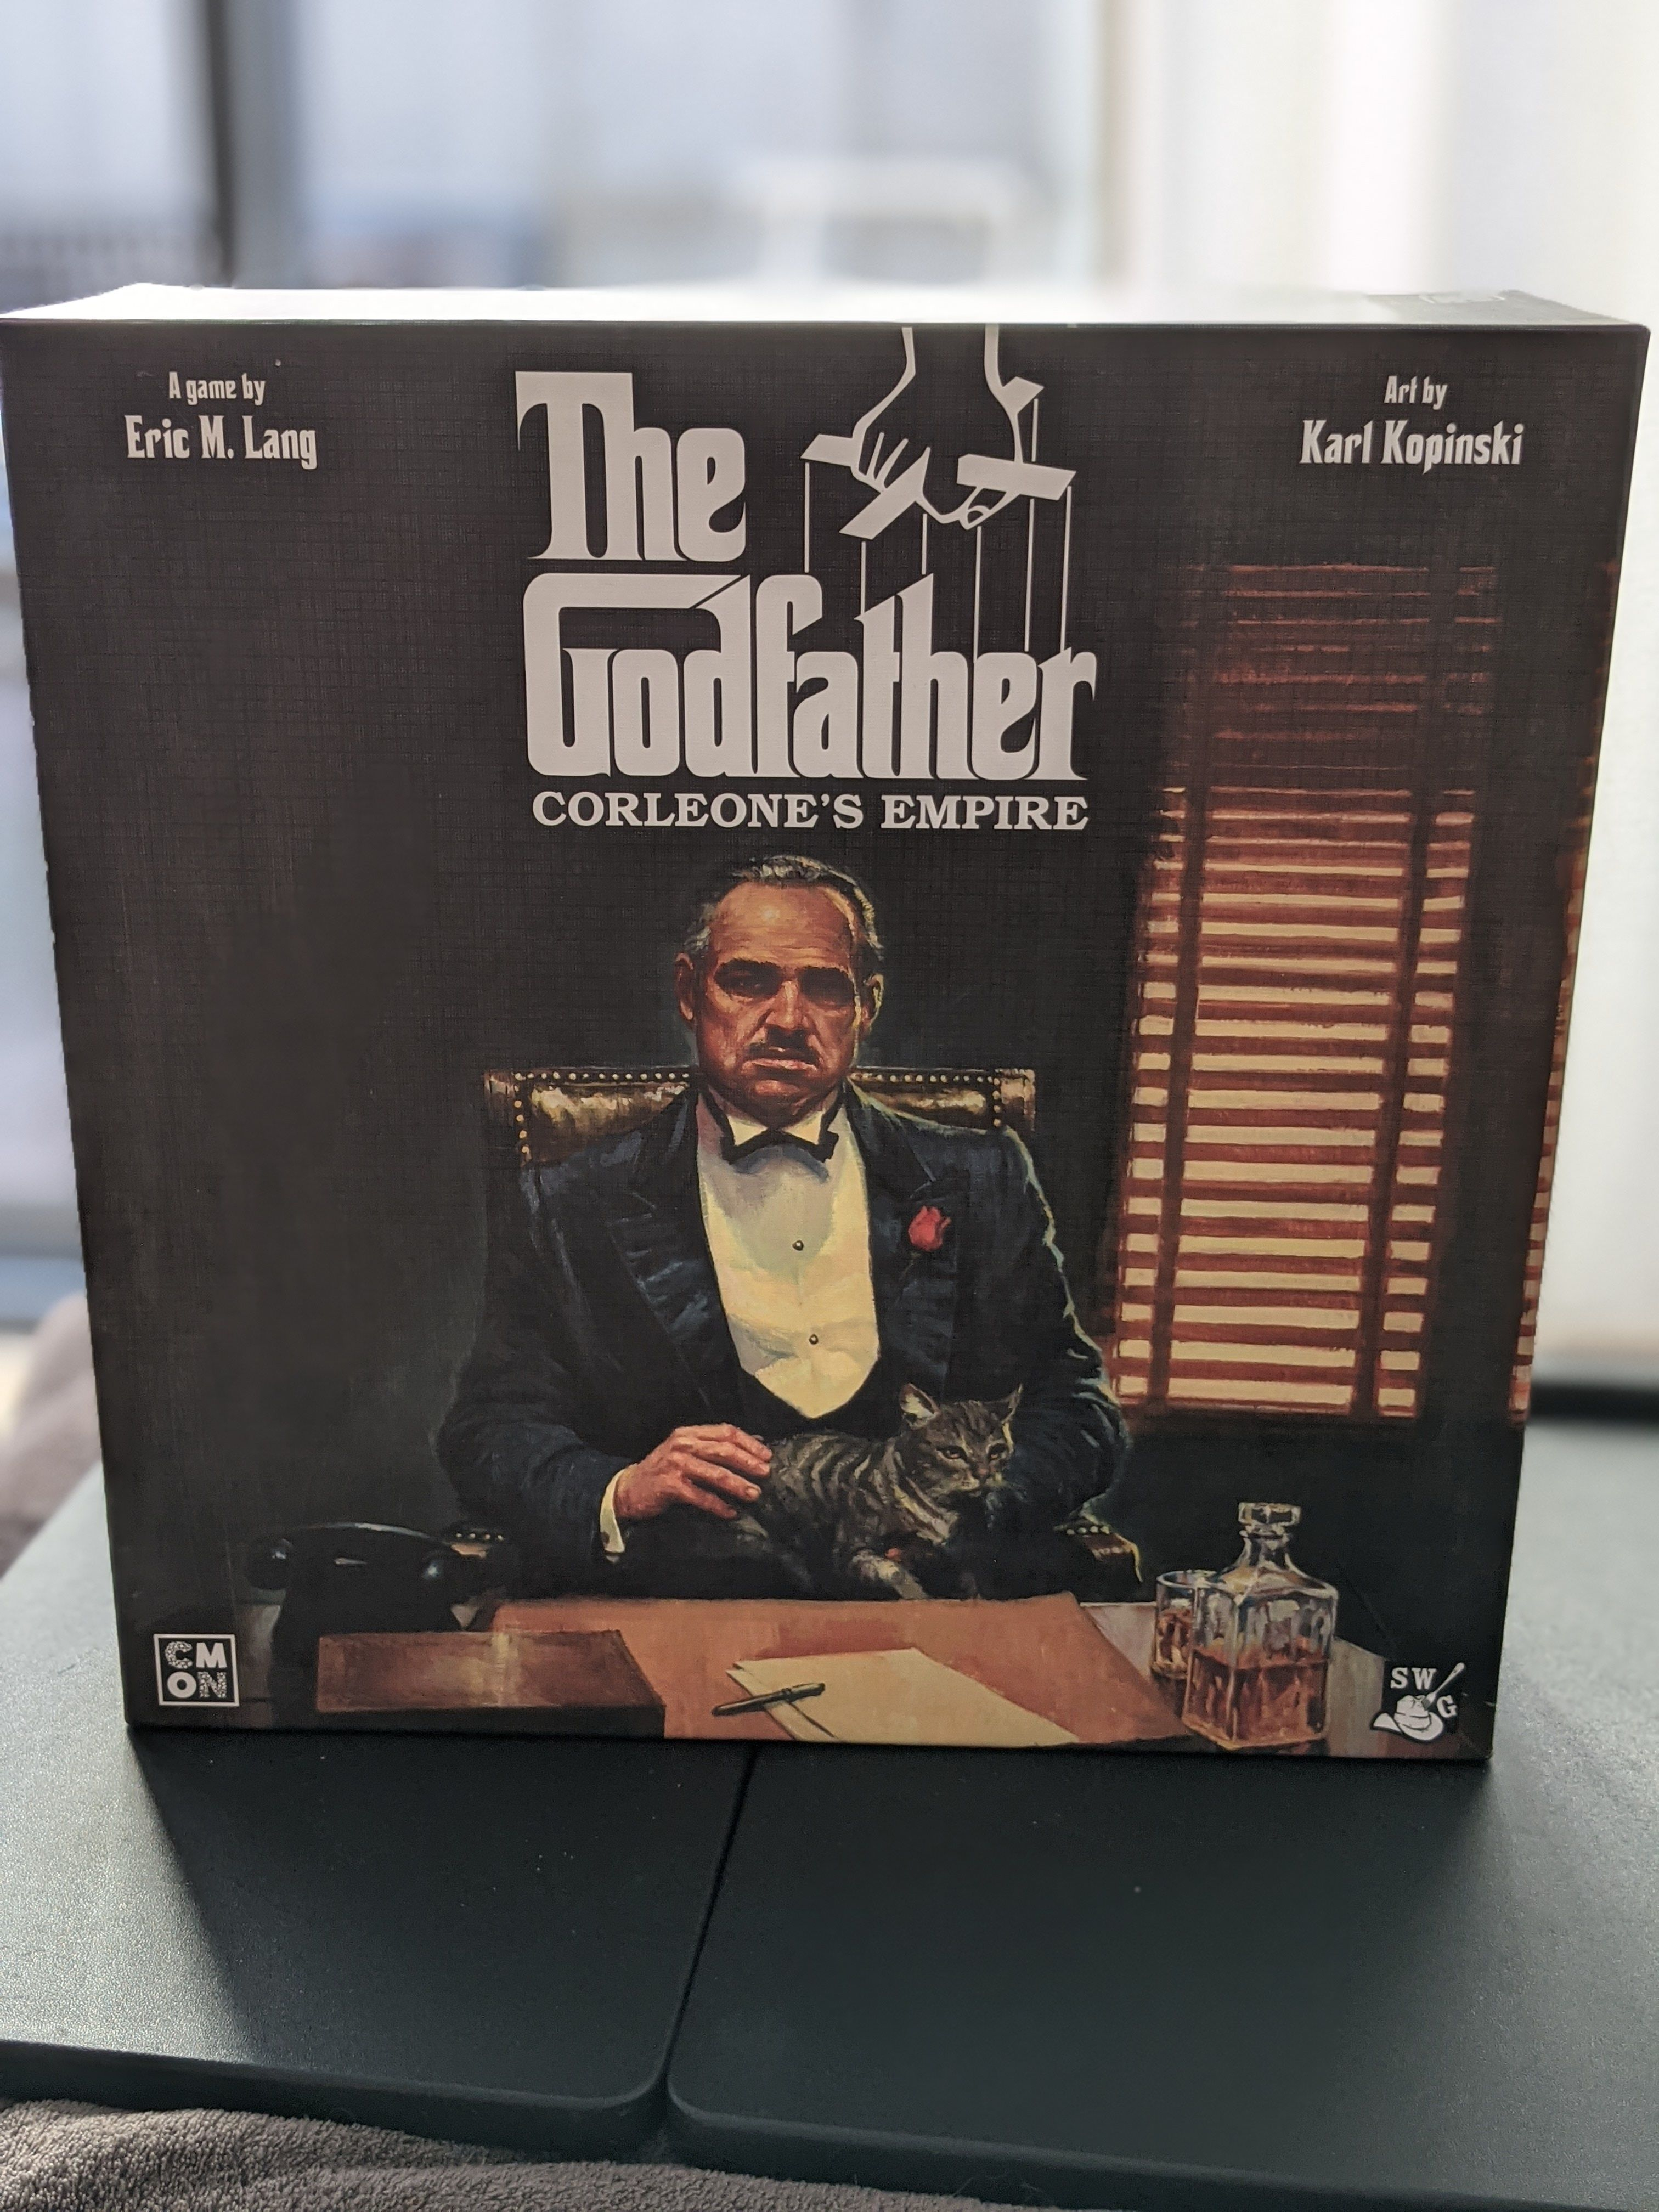 Let's play The Godfather